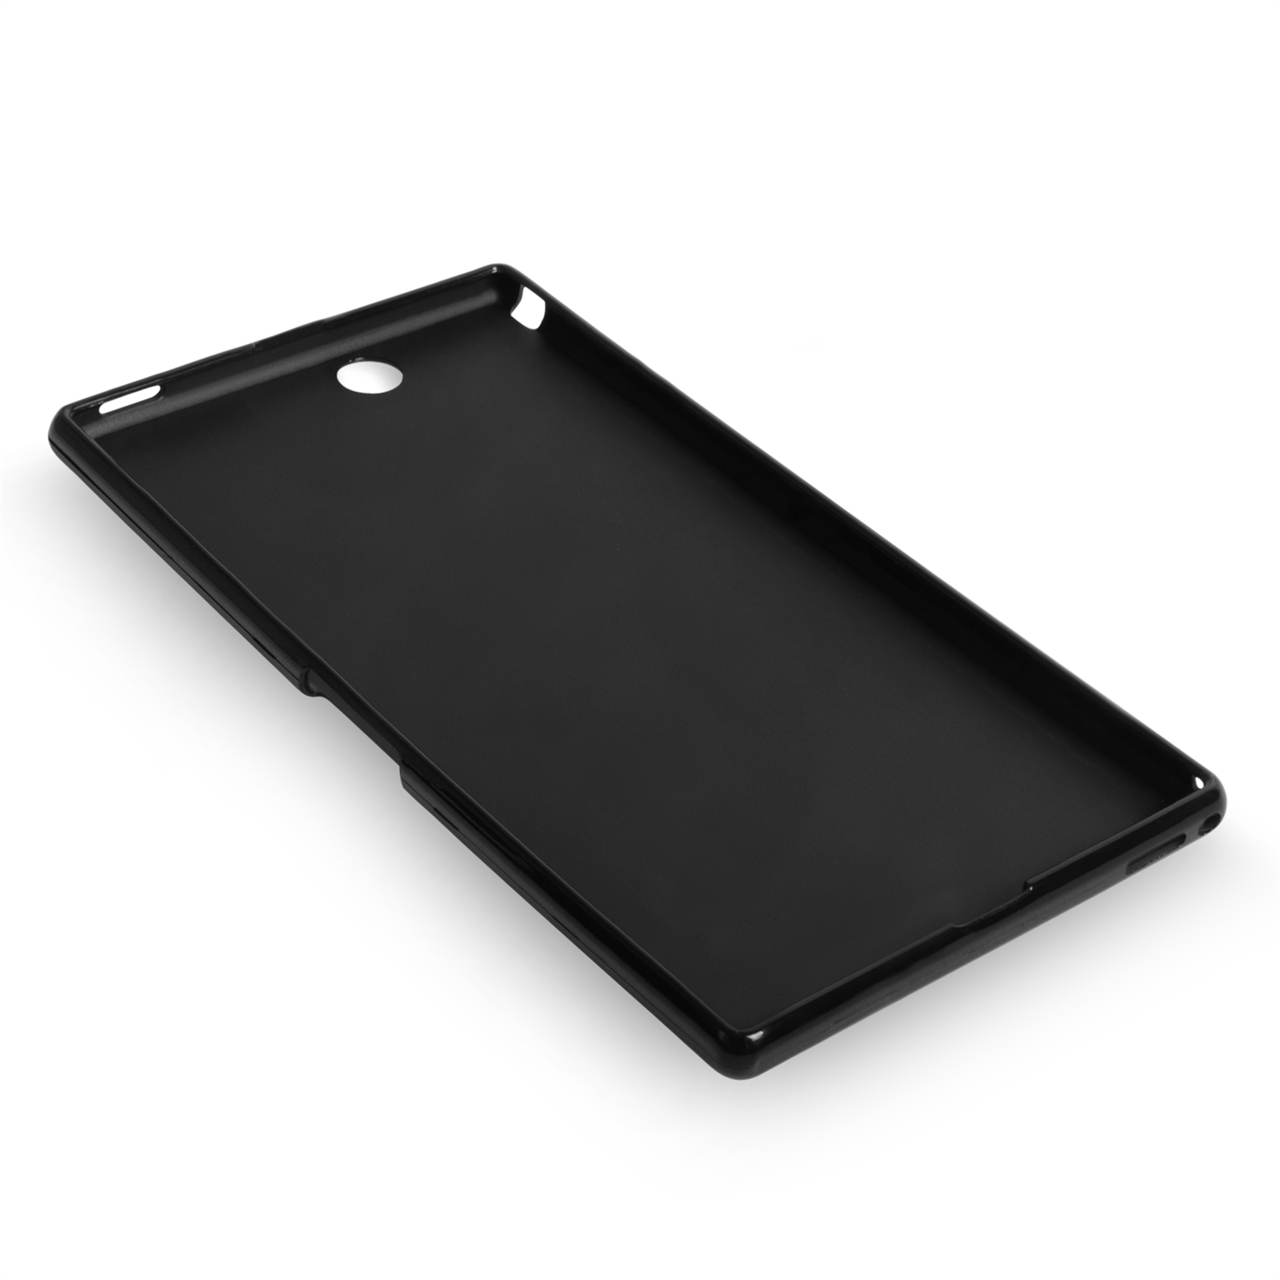 YouSave Accessories Sony Xperia Z Ultra Gel Case - Black